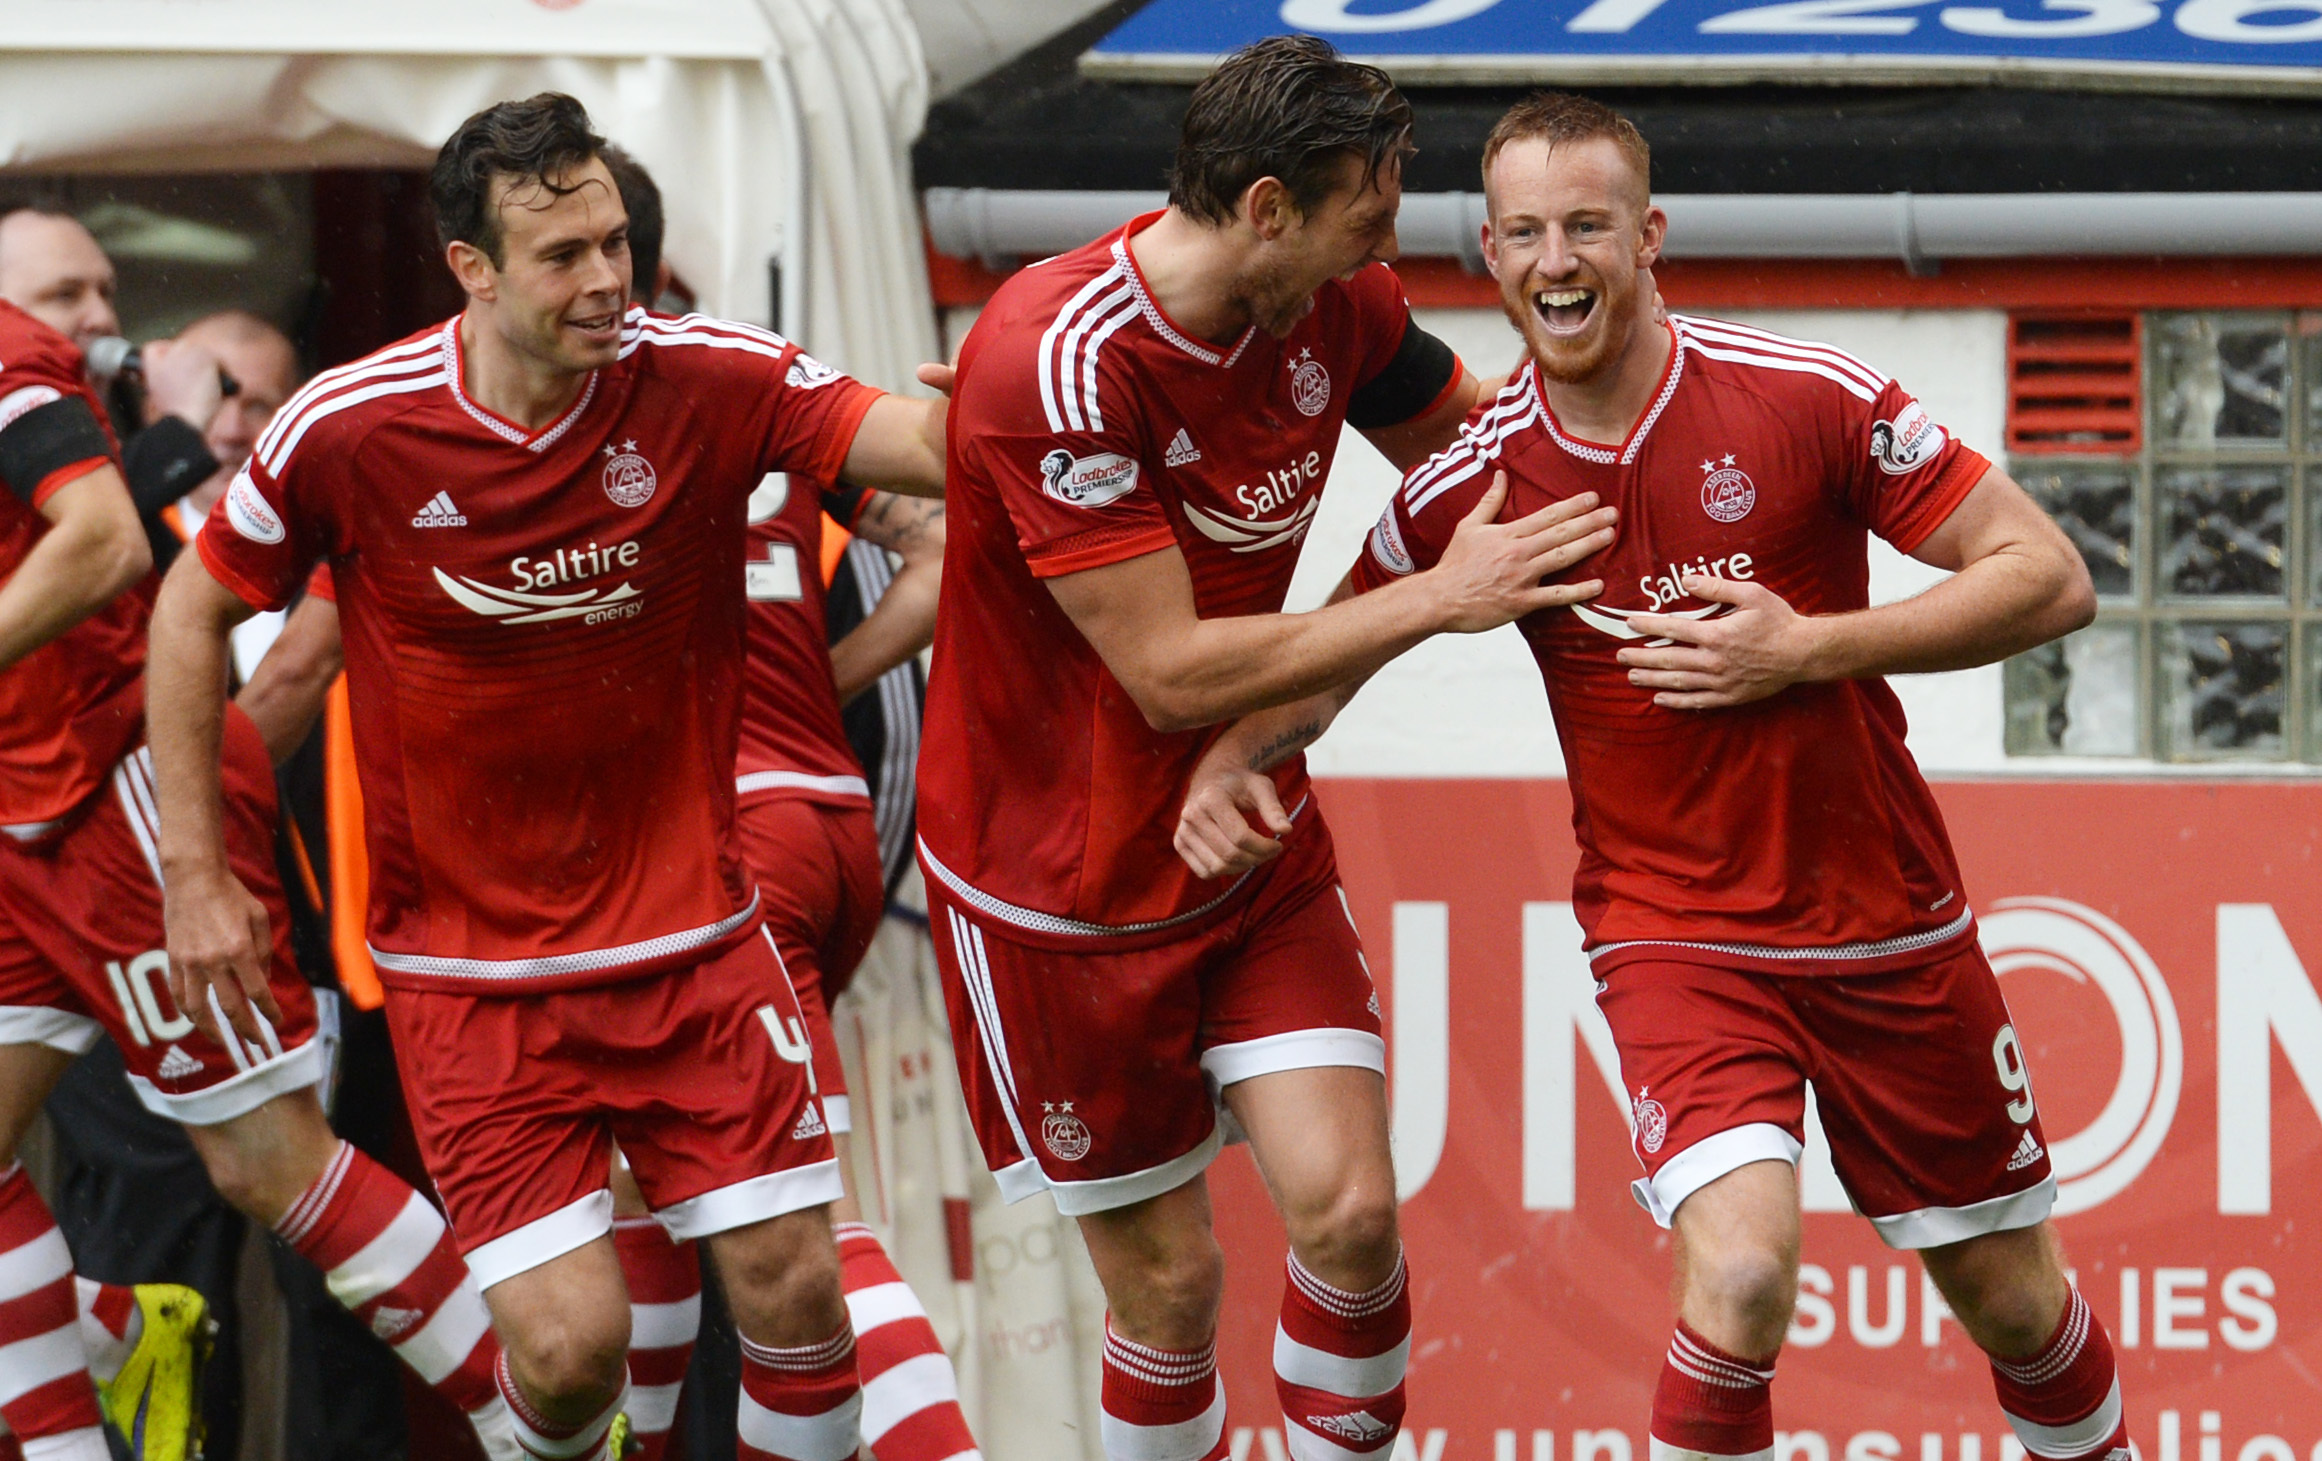 Aberdeen's Adam Rooney (right) celebrates his goal with his team-mates